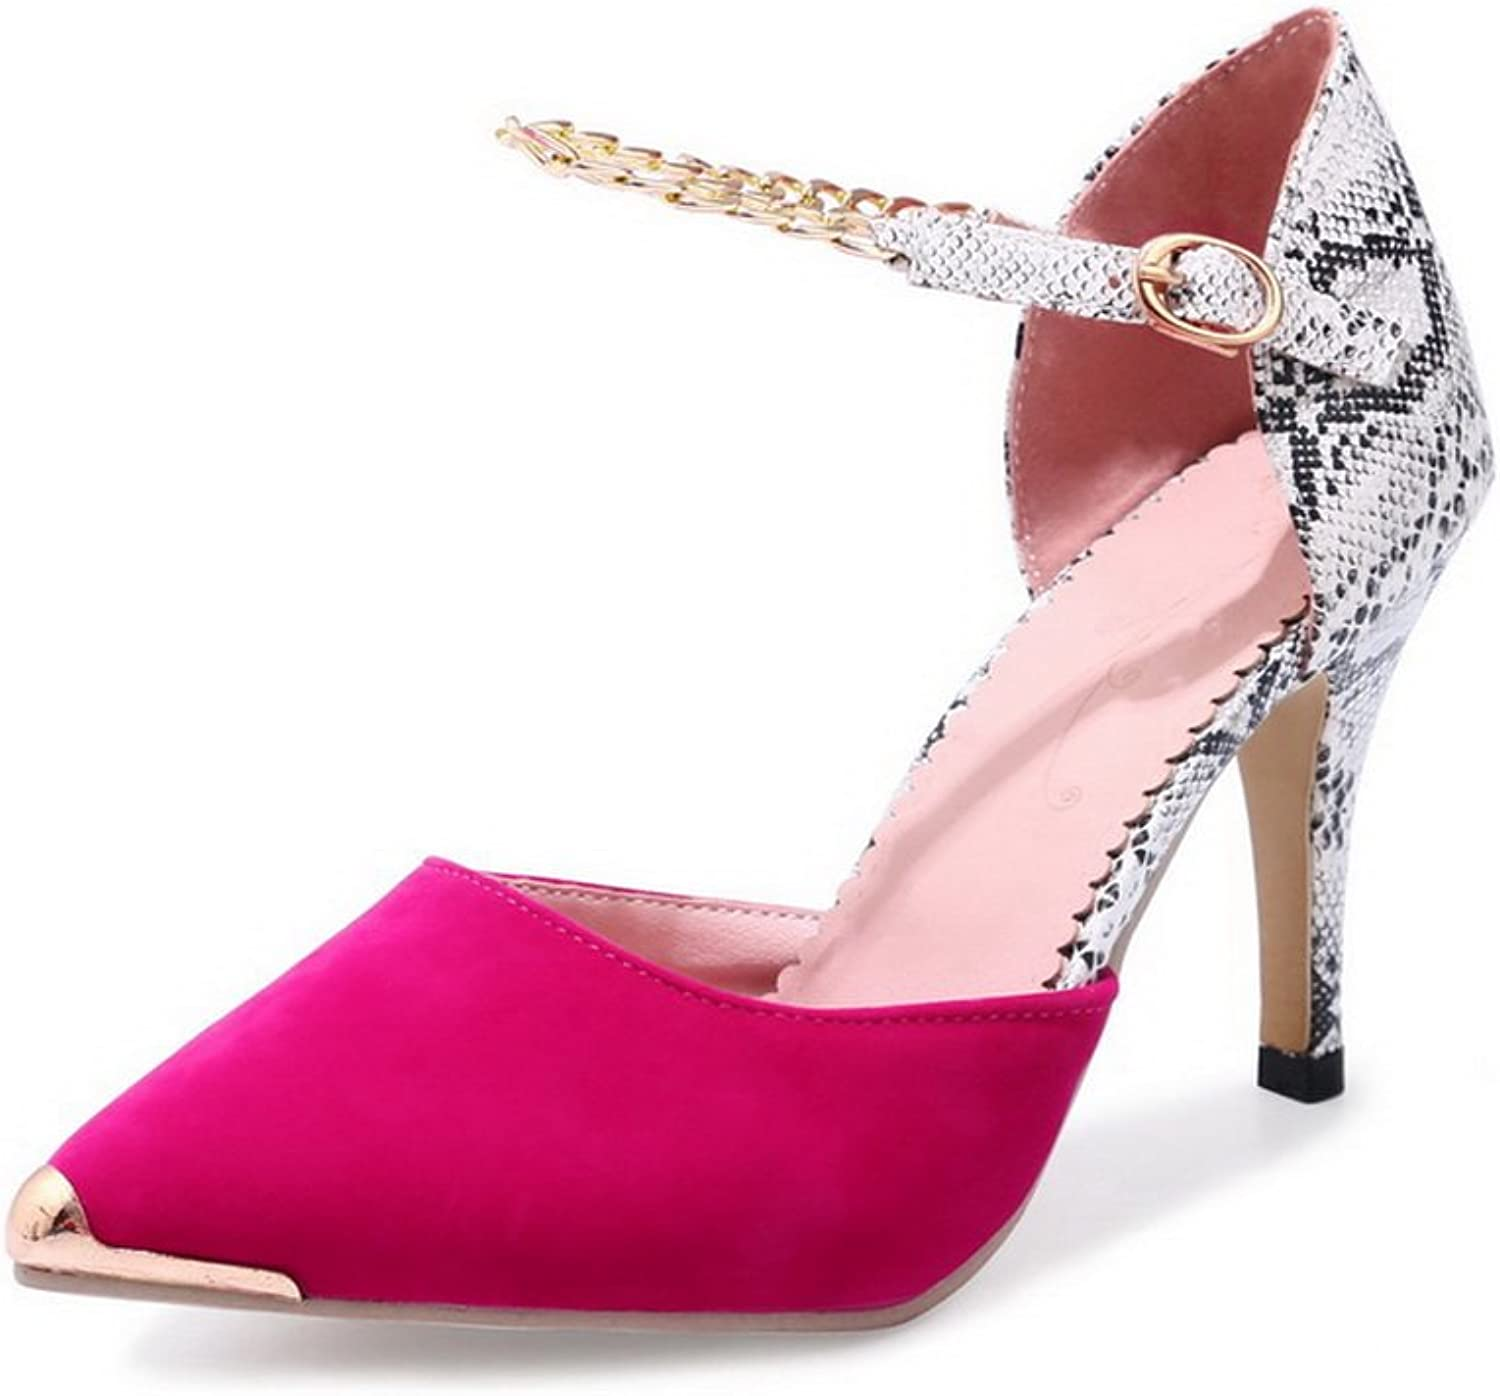 AdeeSu Womens Glitter Pointed-Toe Metal Buckles Spikes Stilettos Urethane Pumps shoes SLC03593